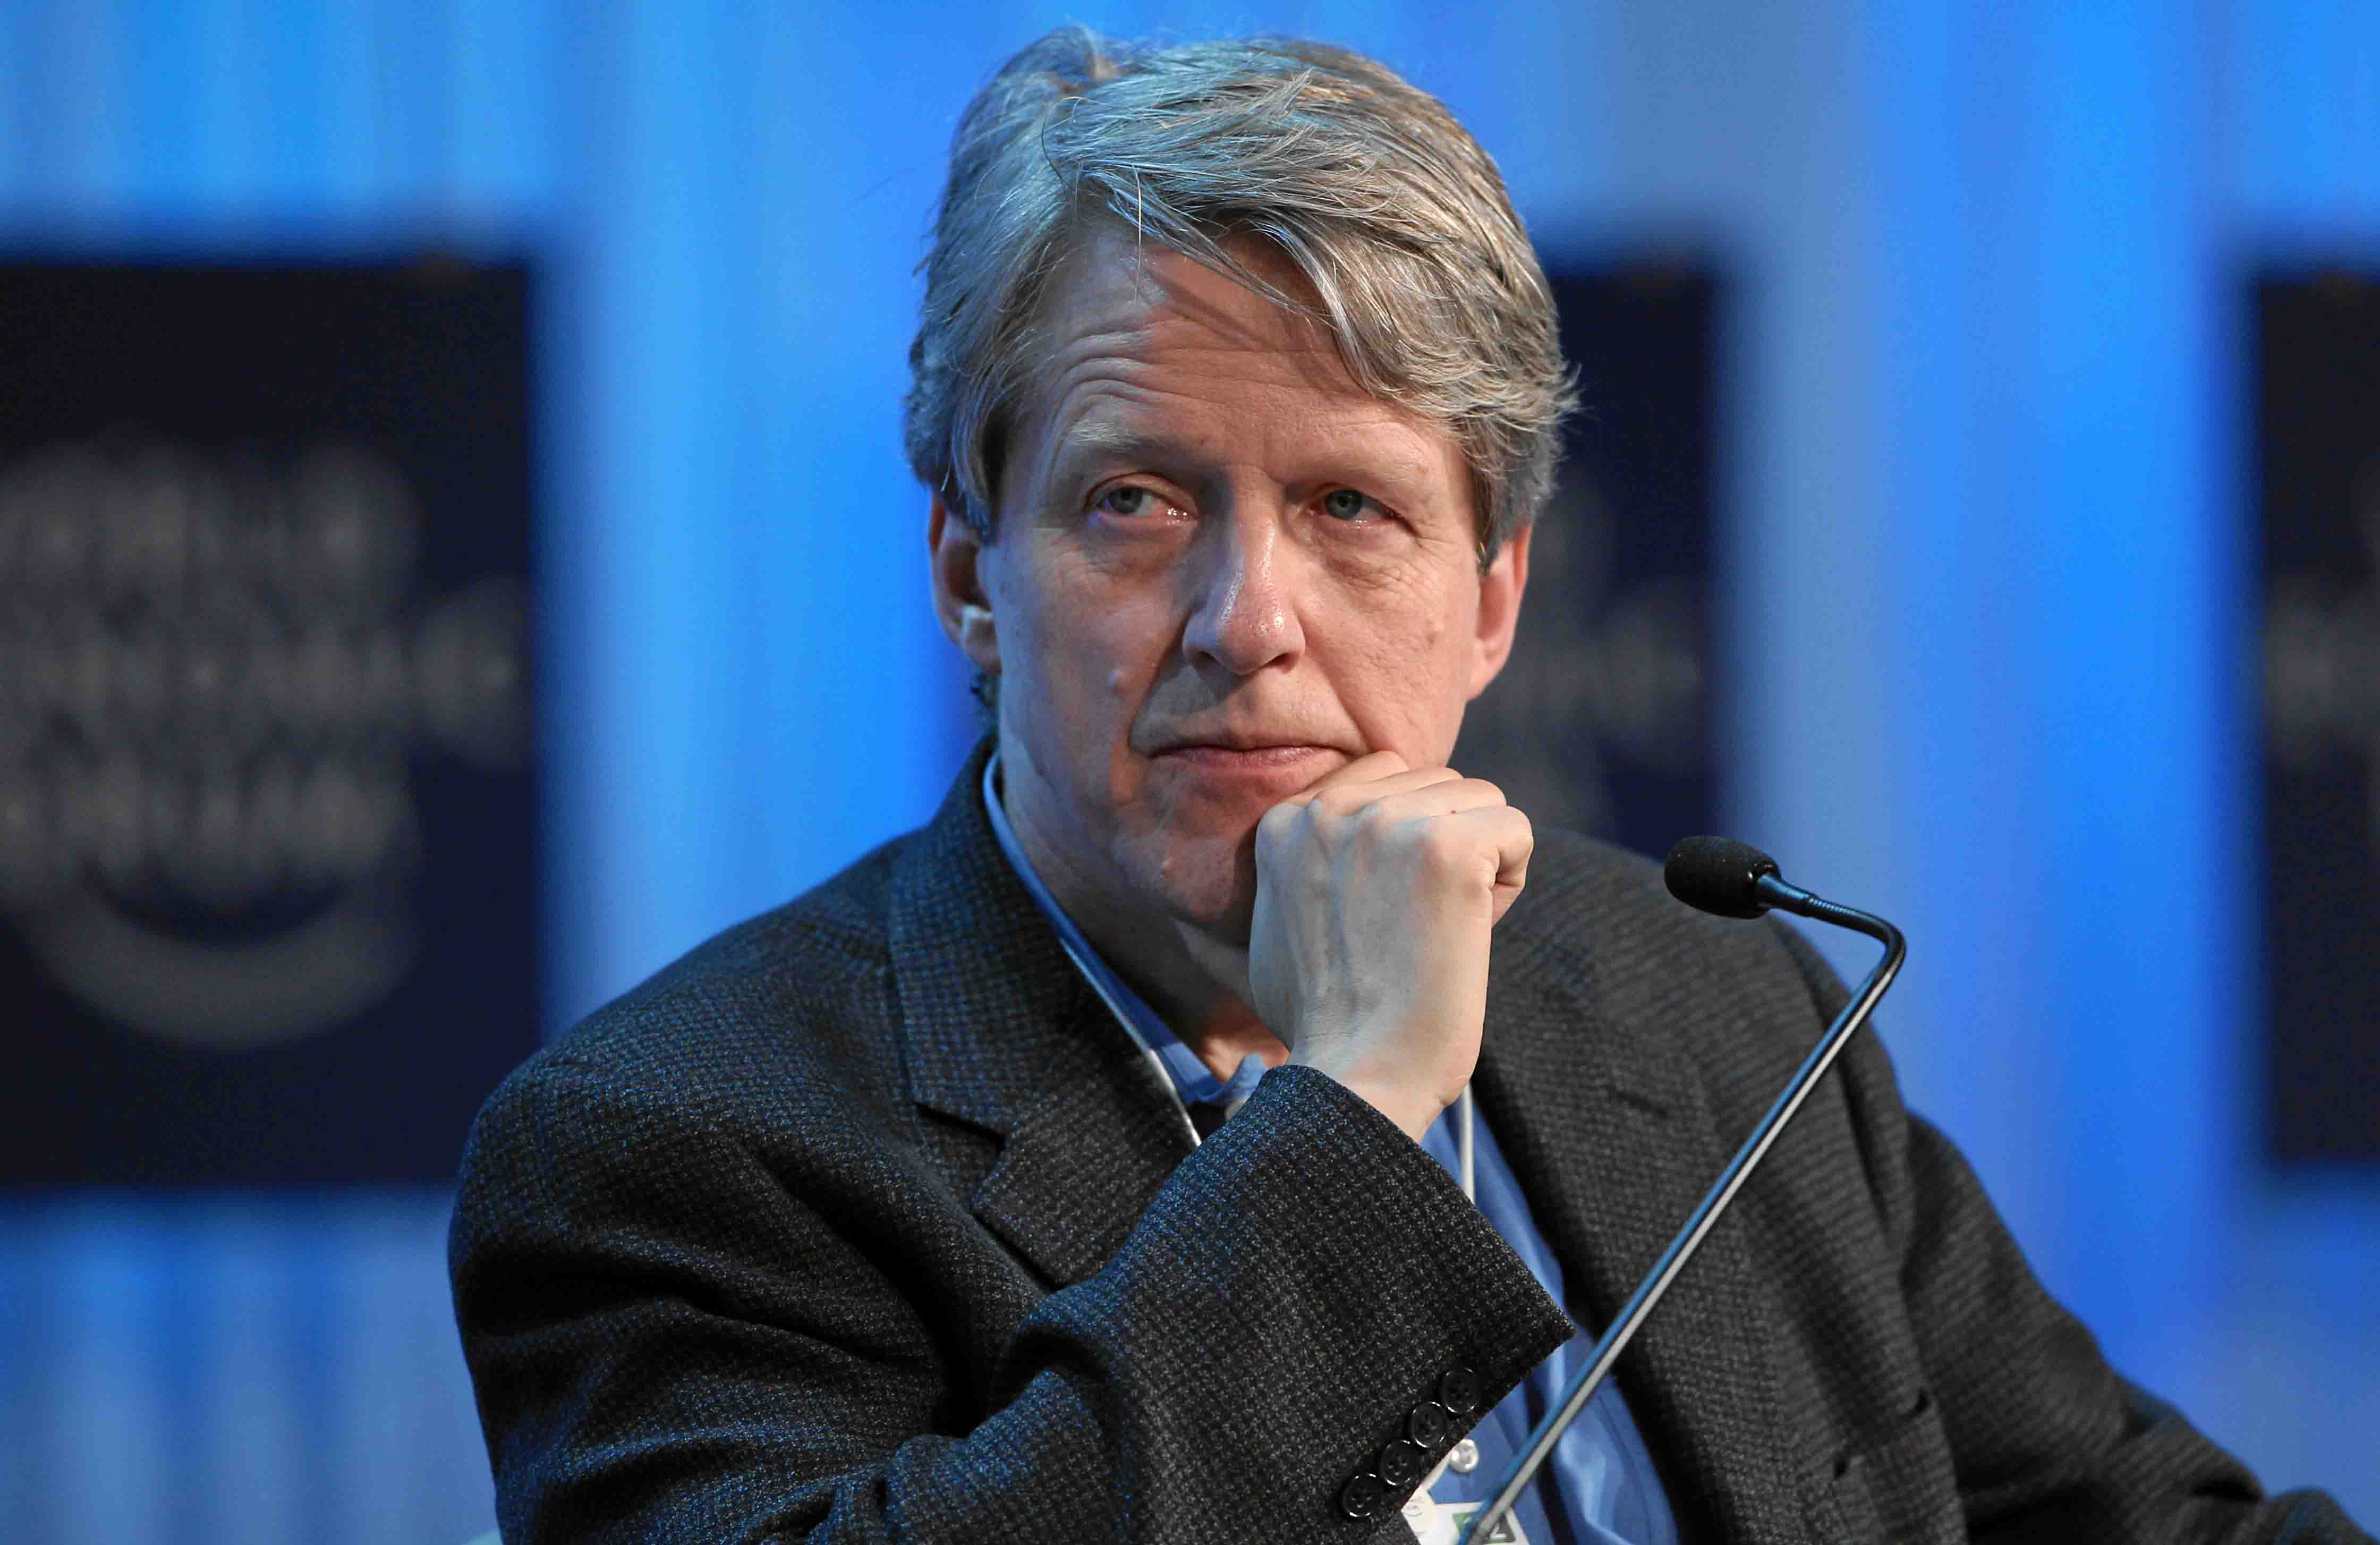 https://img6.s3wfg.com/web/img/images_uploaded/f/4/robert-shiller.jpg